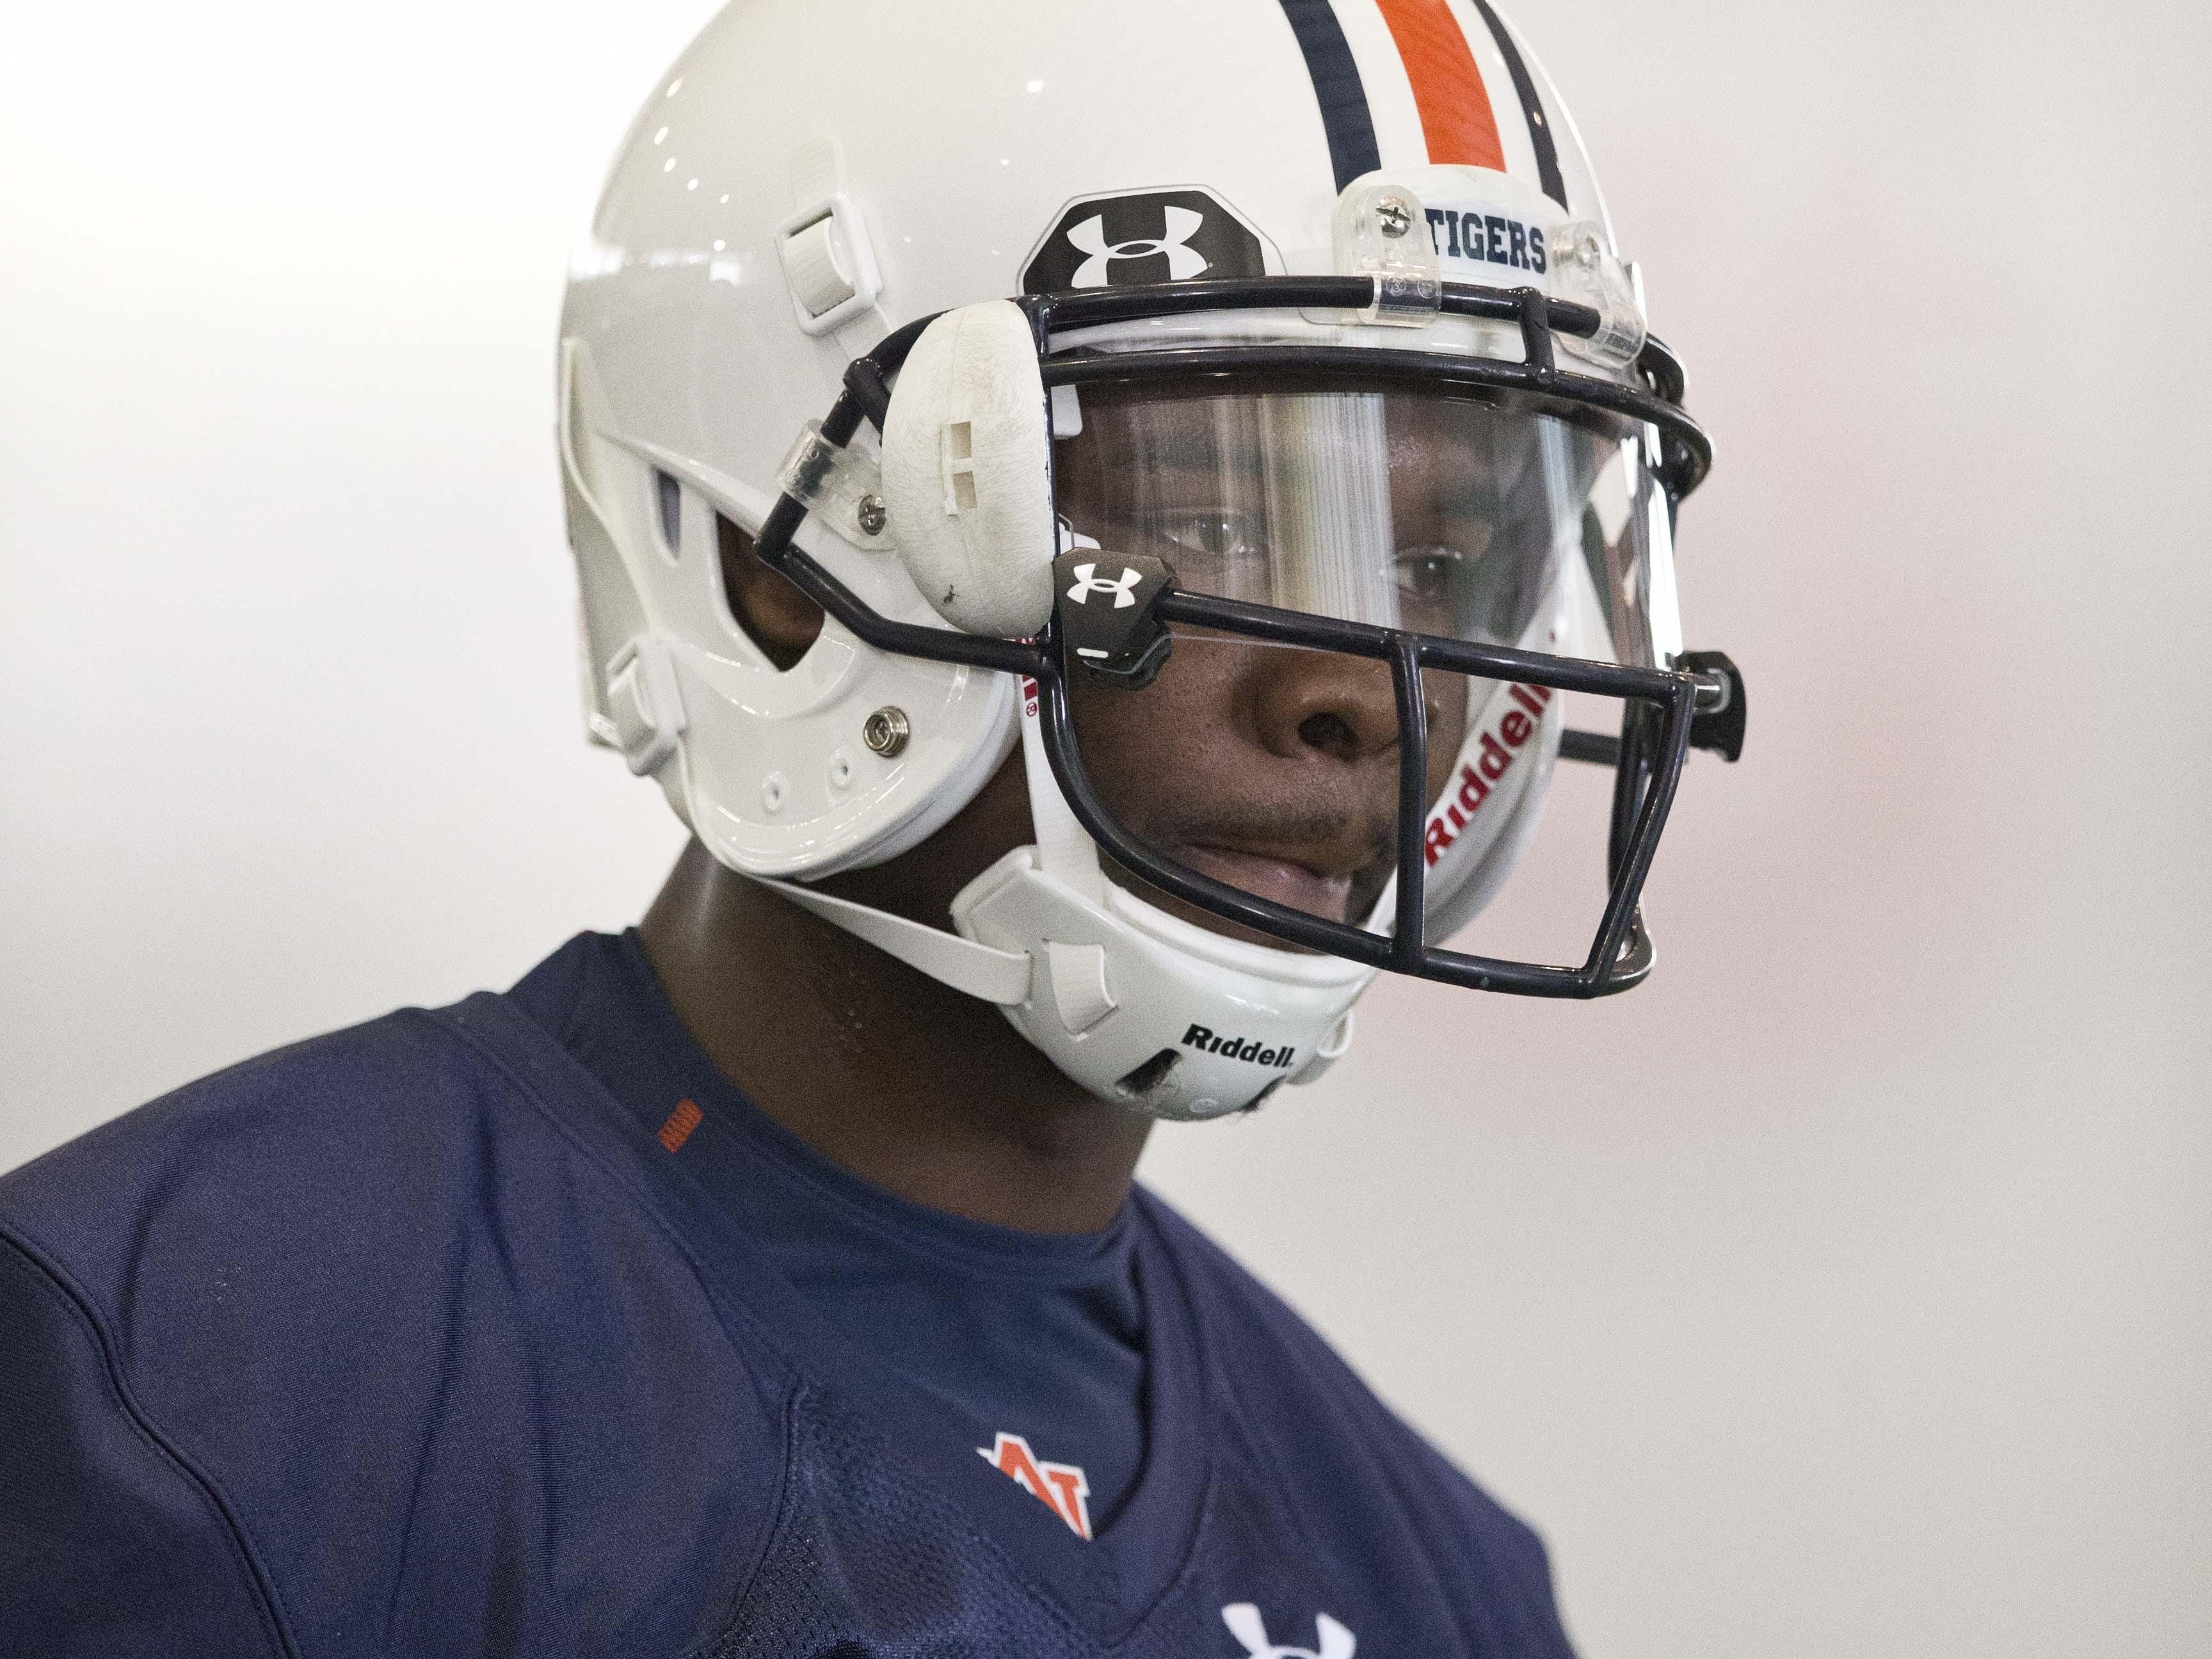 Auburn wide receiver D'haquille Williams looks to a coach for drill instructions during an NCAA college football practice, Tuesday, Aug. 4, 2015, in Auburn, Ala. (AP Photo/Brynn Anderson)